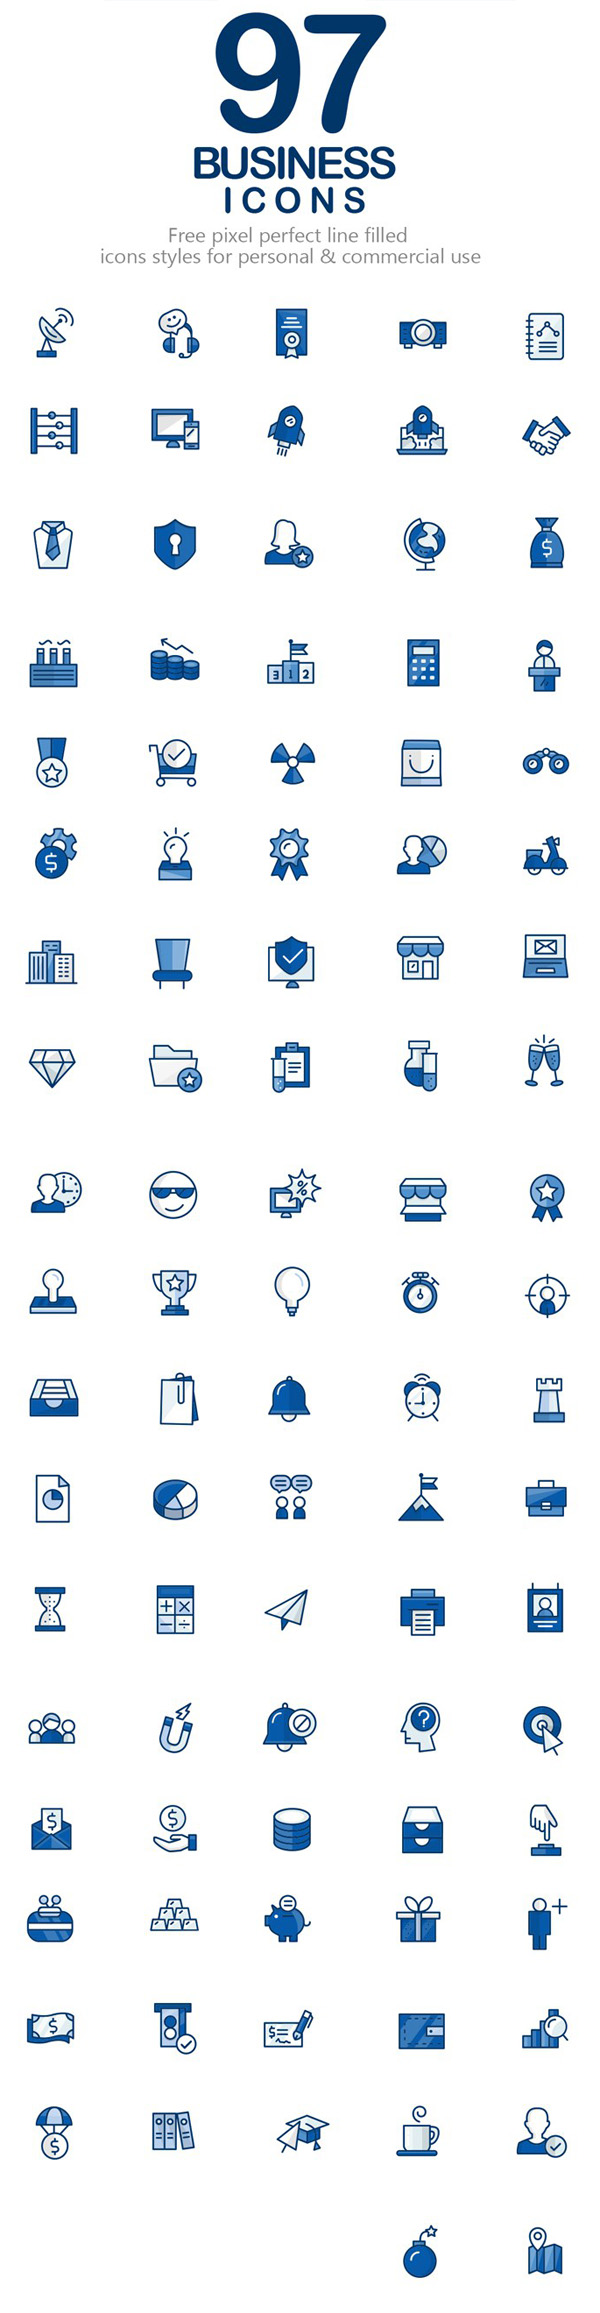 Free Business Vector Icons (97 Icons)